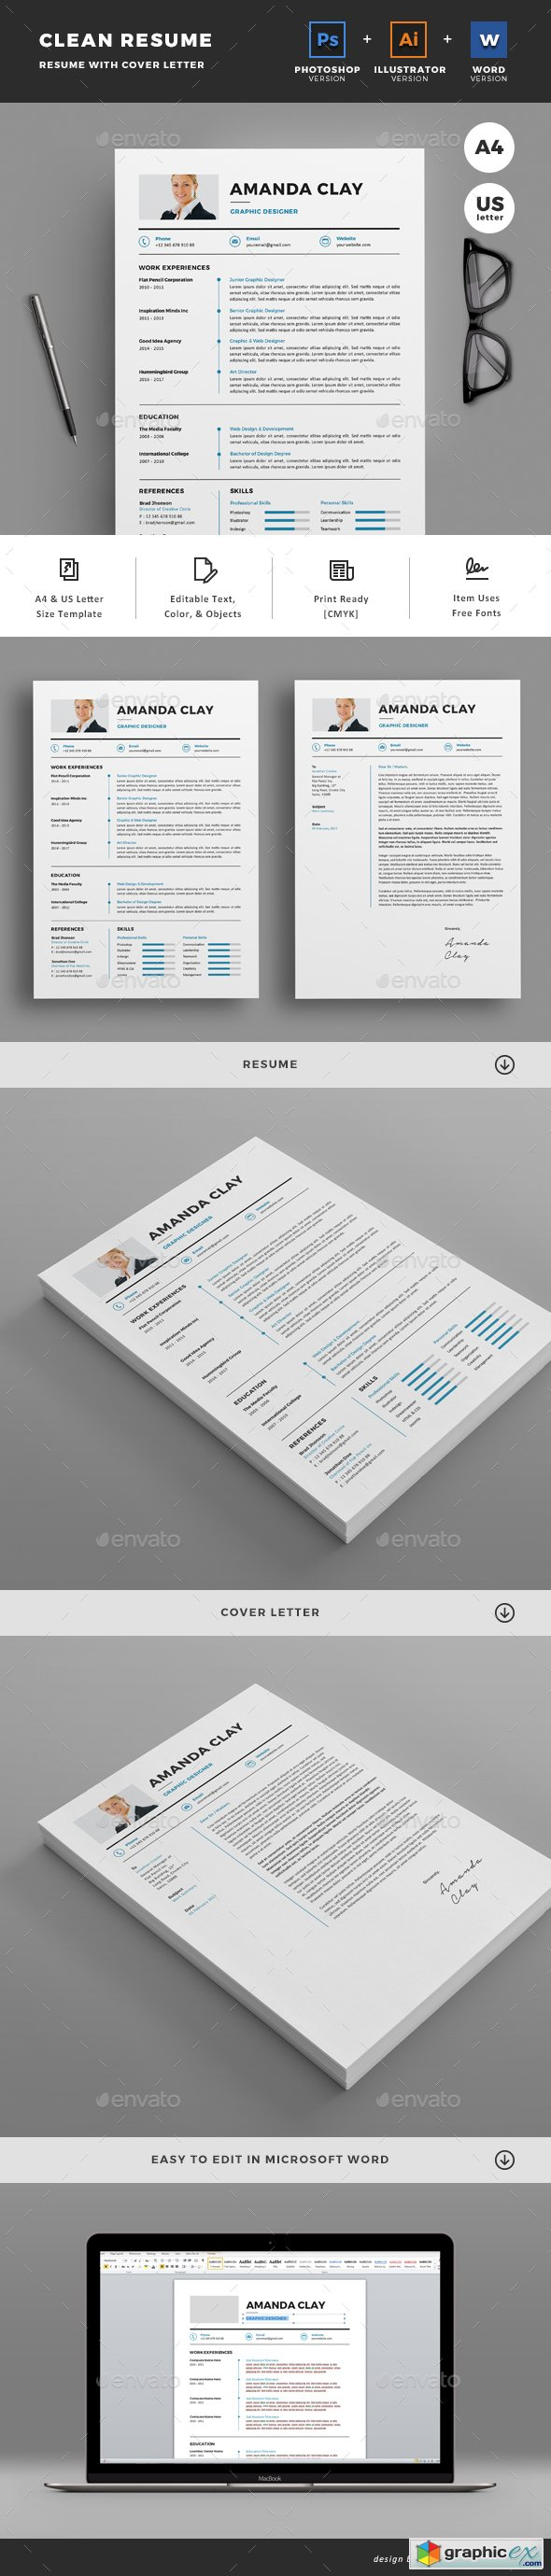 graphicriver resume 187 free vector stock image